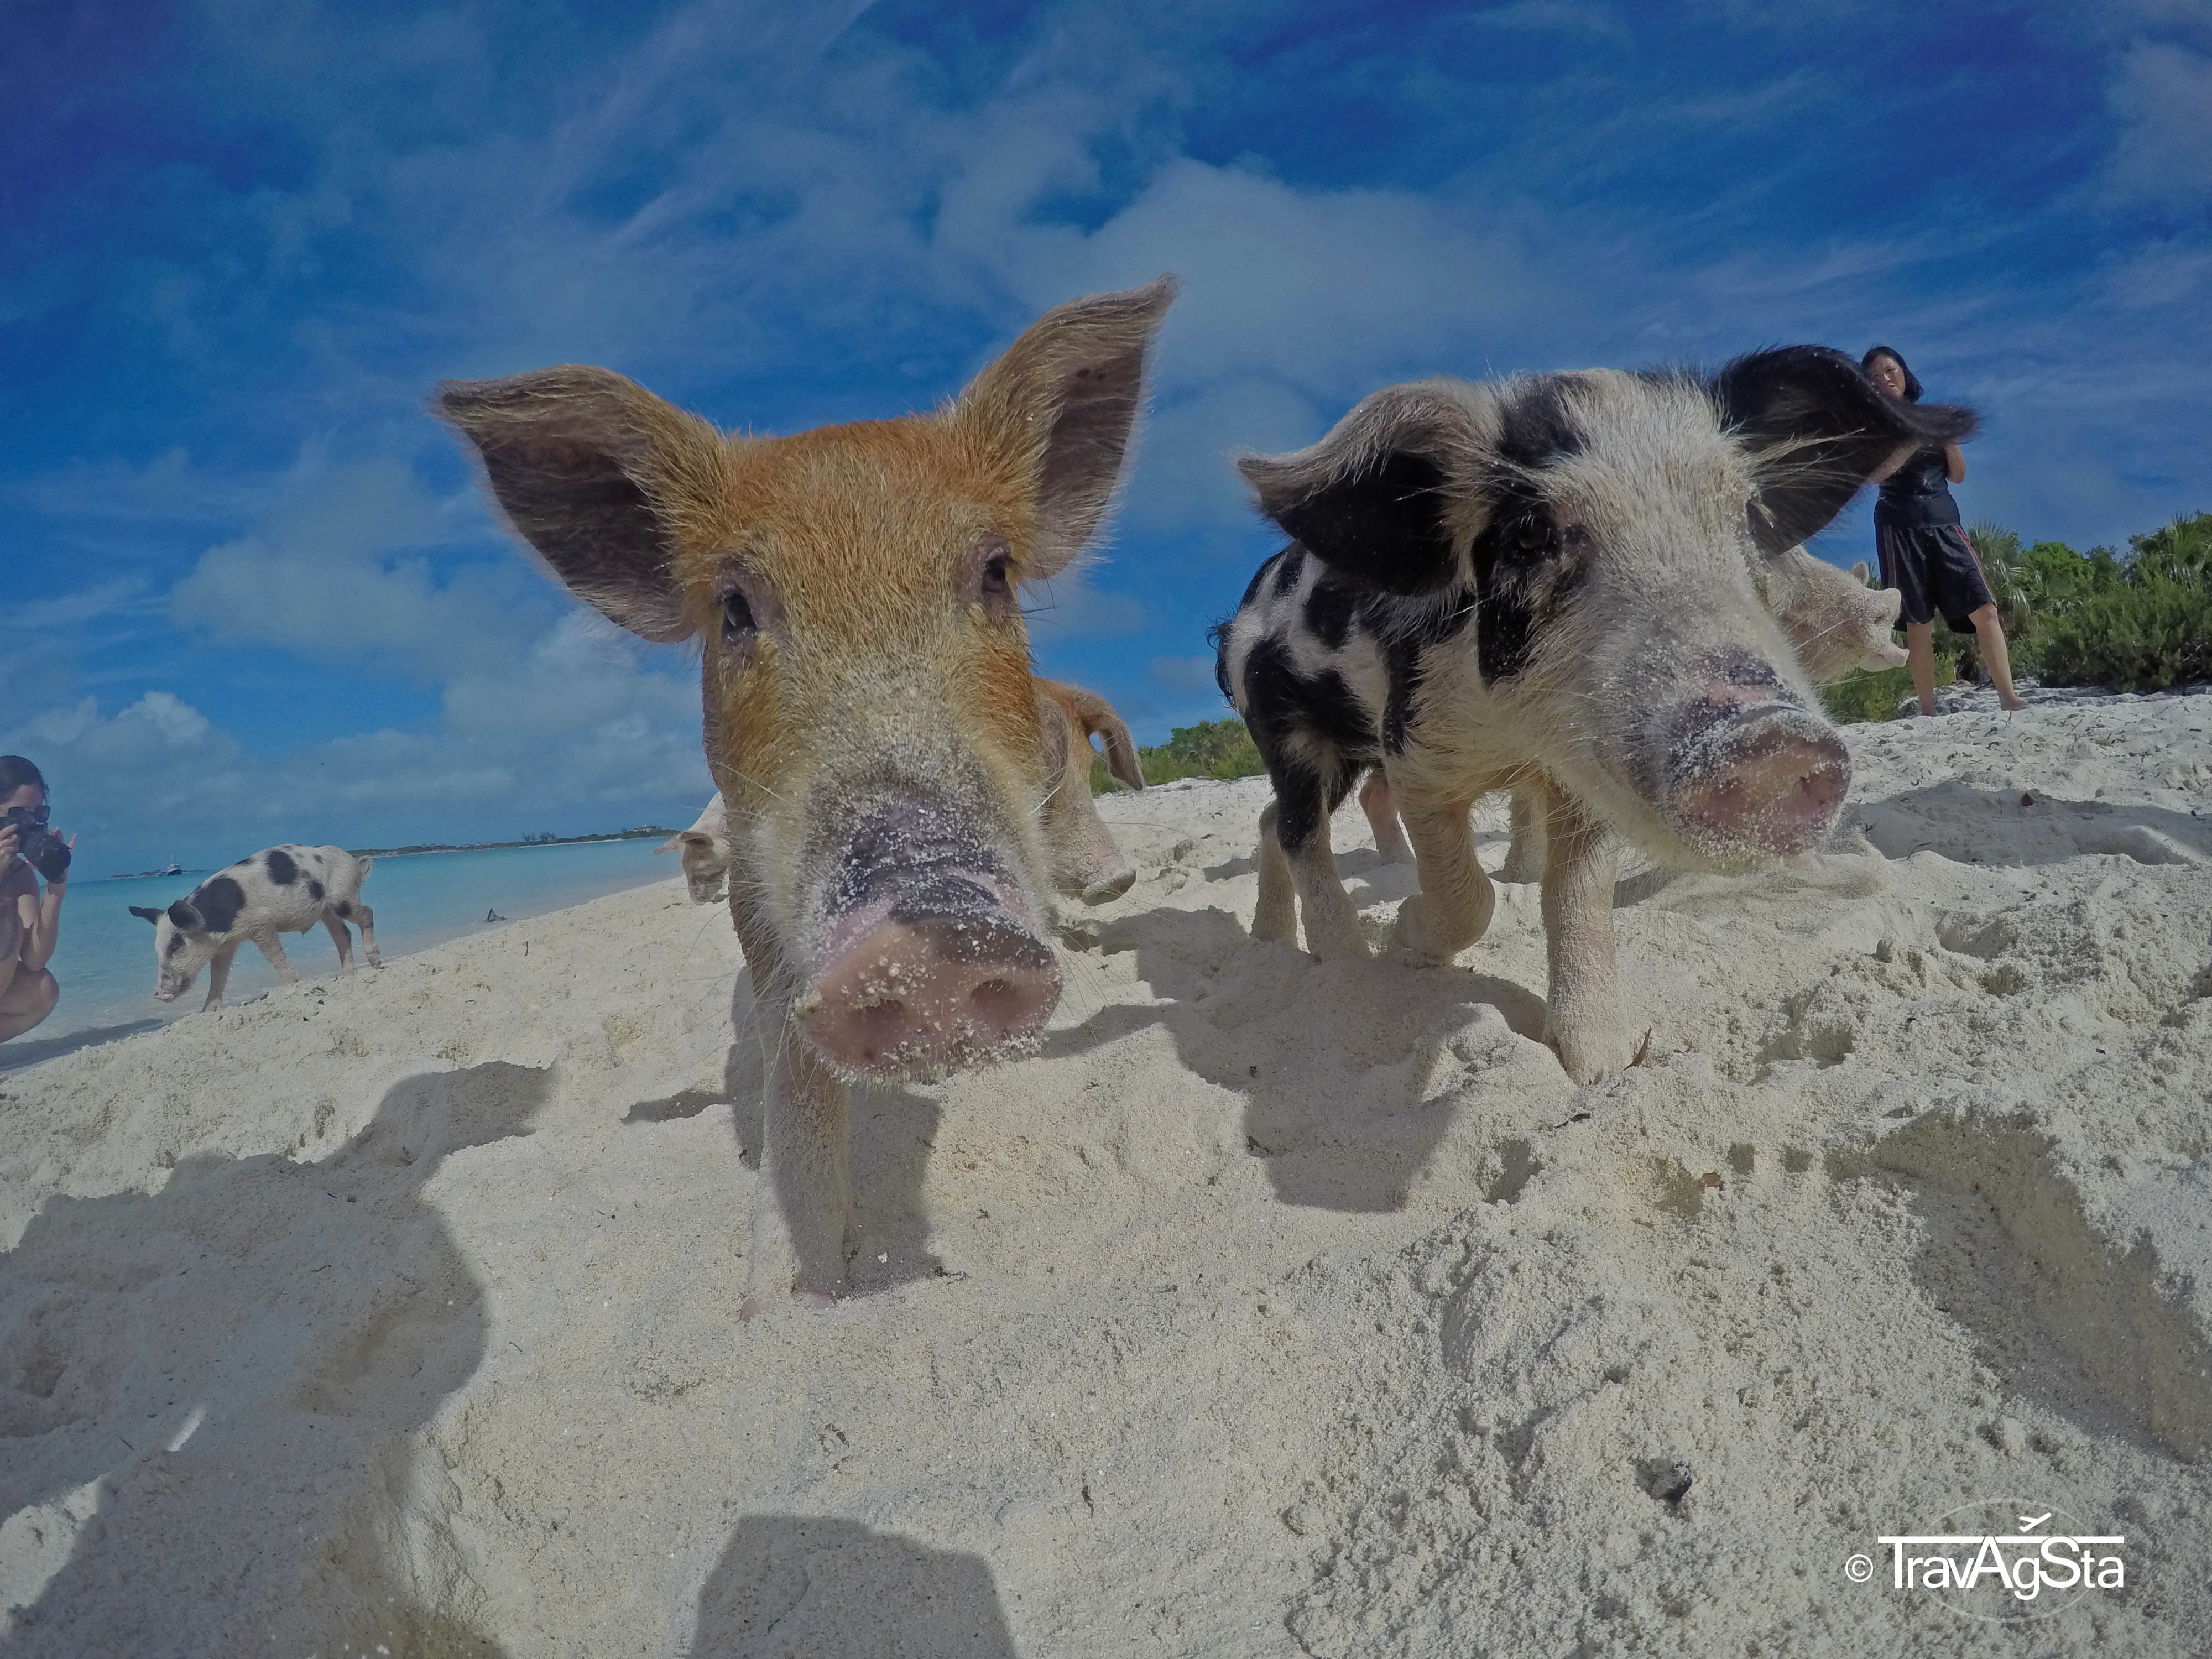 Swimming Pigs, Nurse Sharks, Iguanas – a day trip along the Exuma Cays!